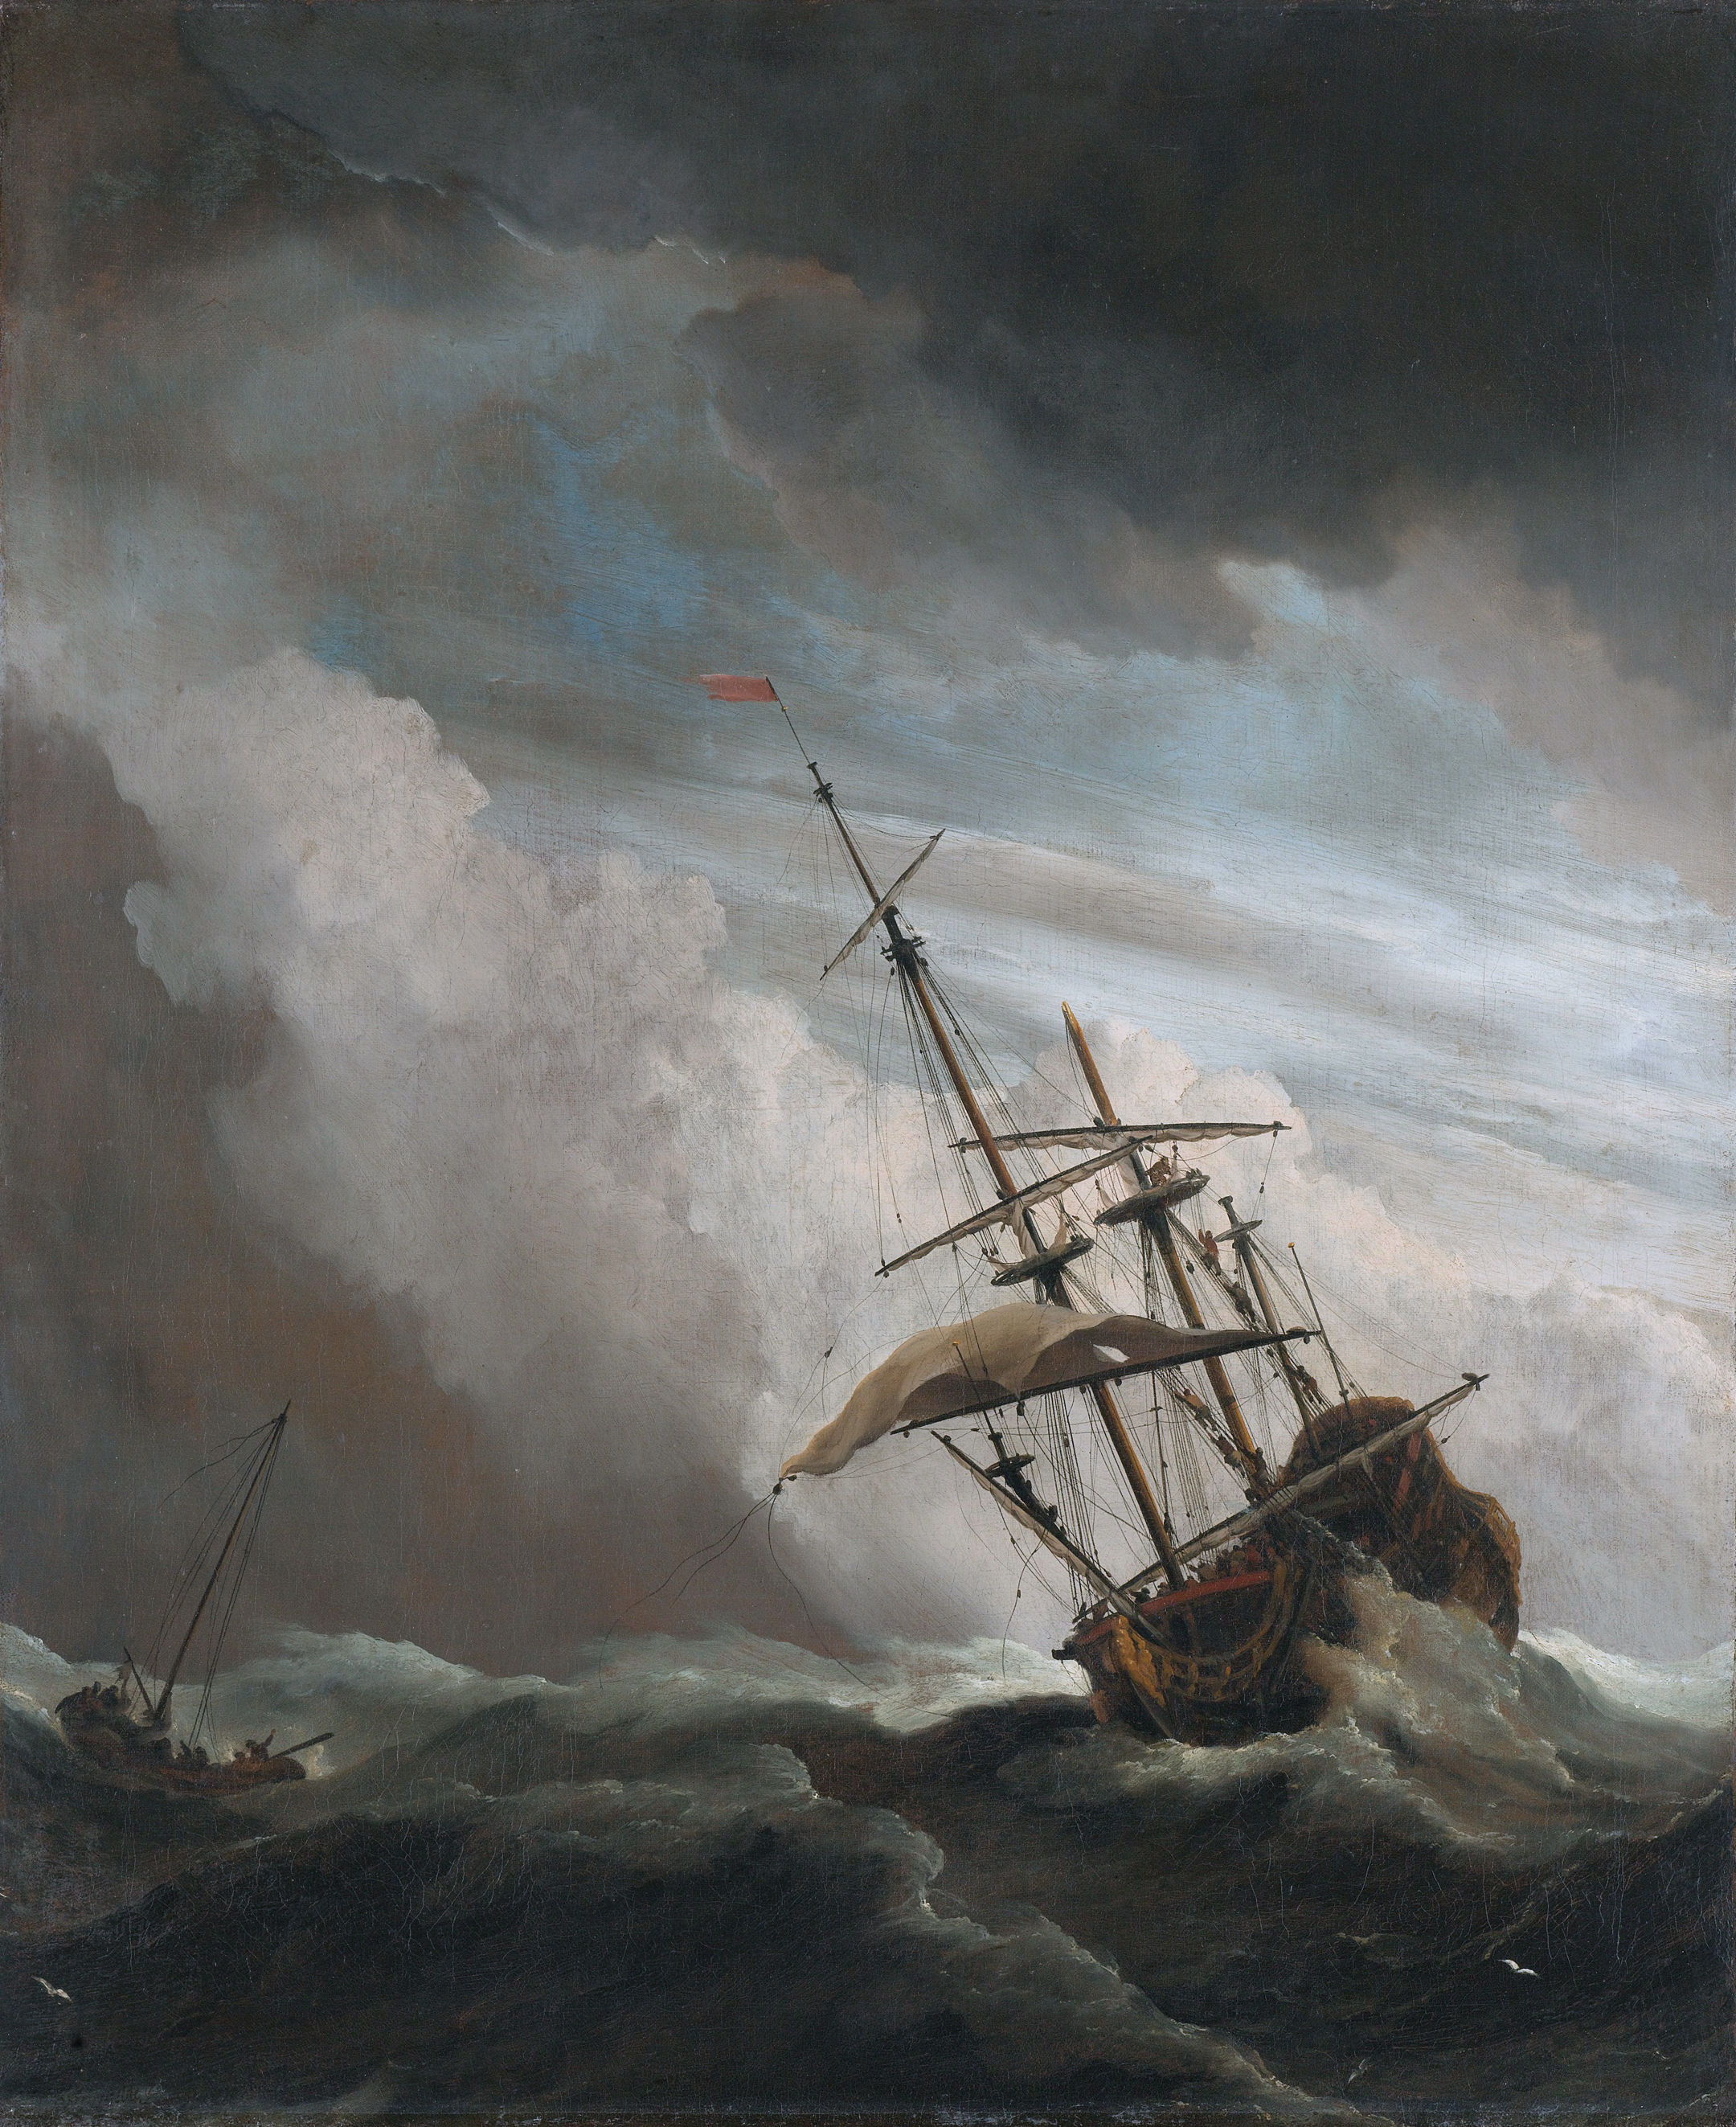 On Stormy High Seas